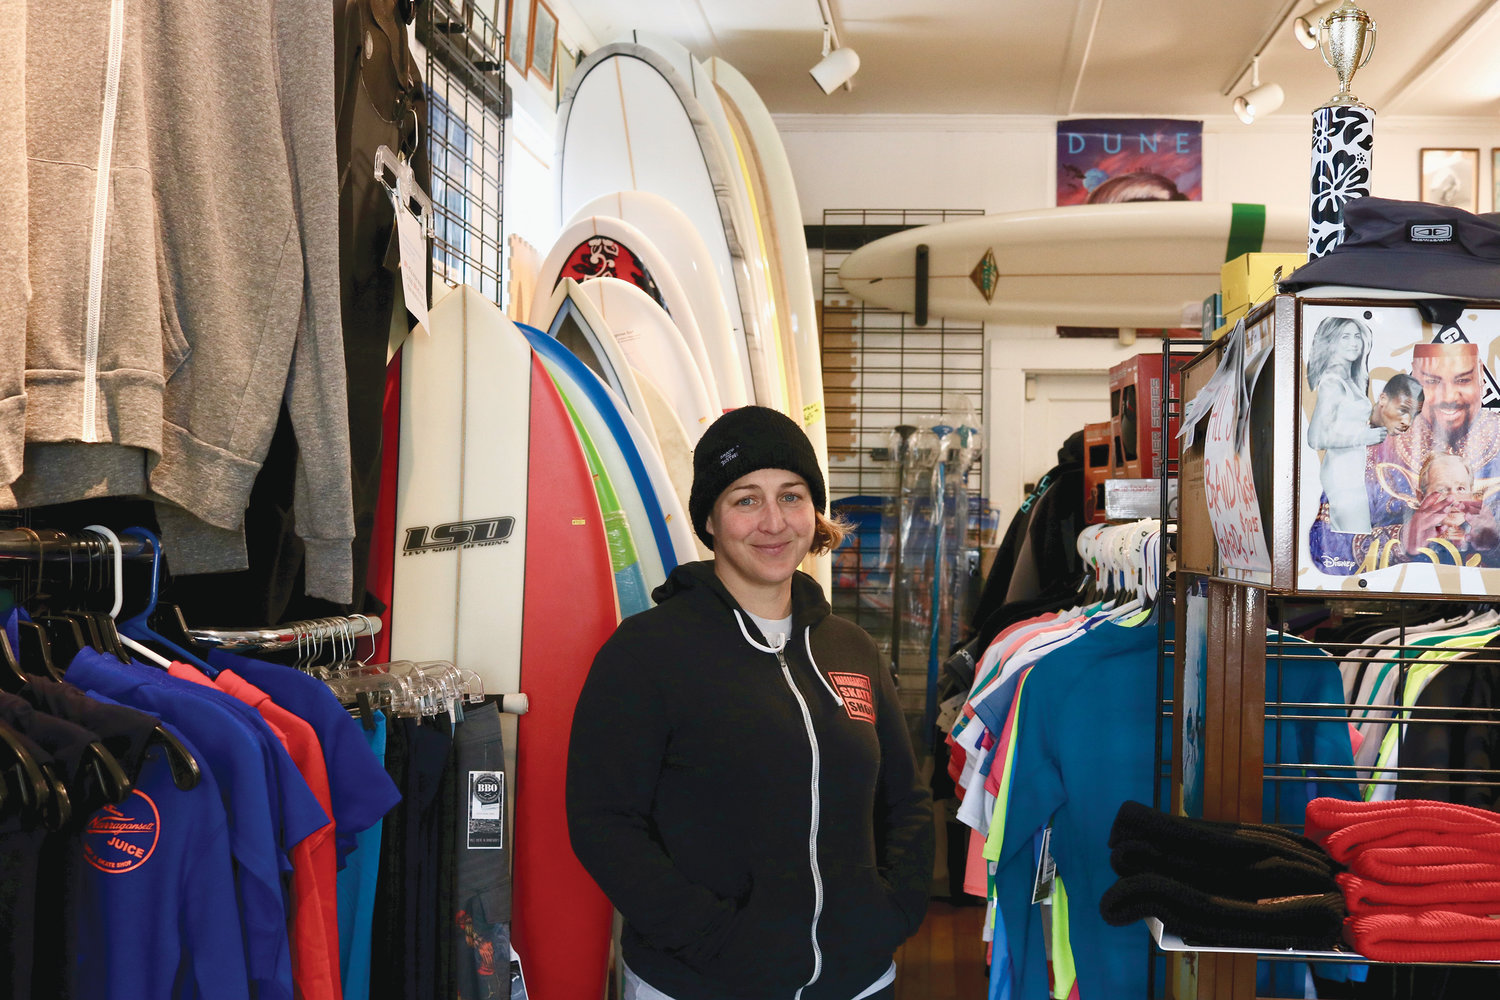 This Narragansett institution has been outfitting surfers for over 50 years